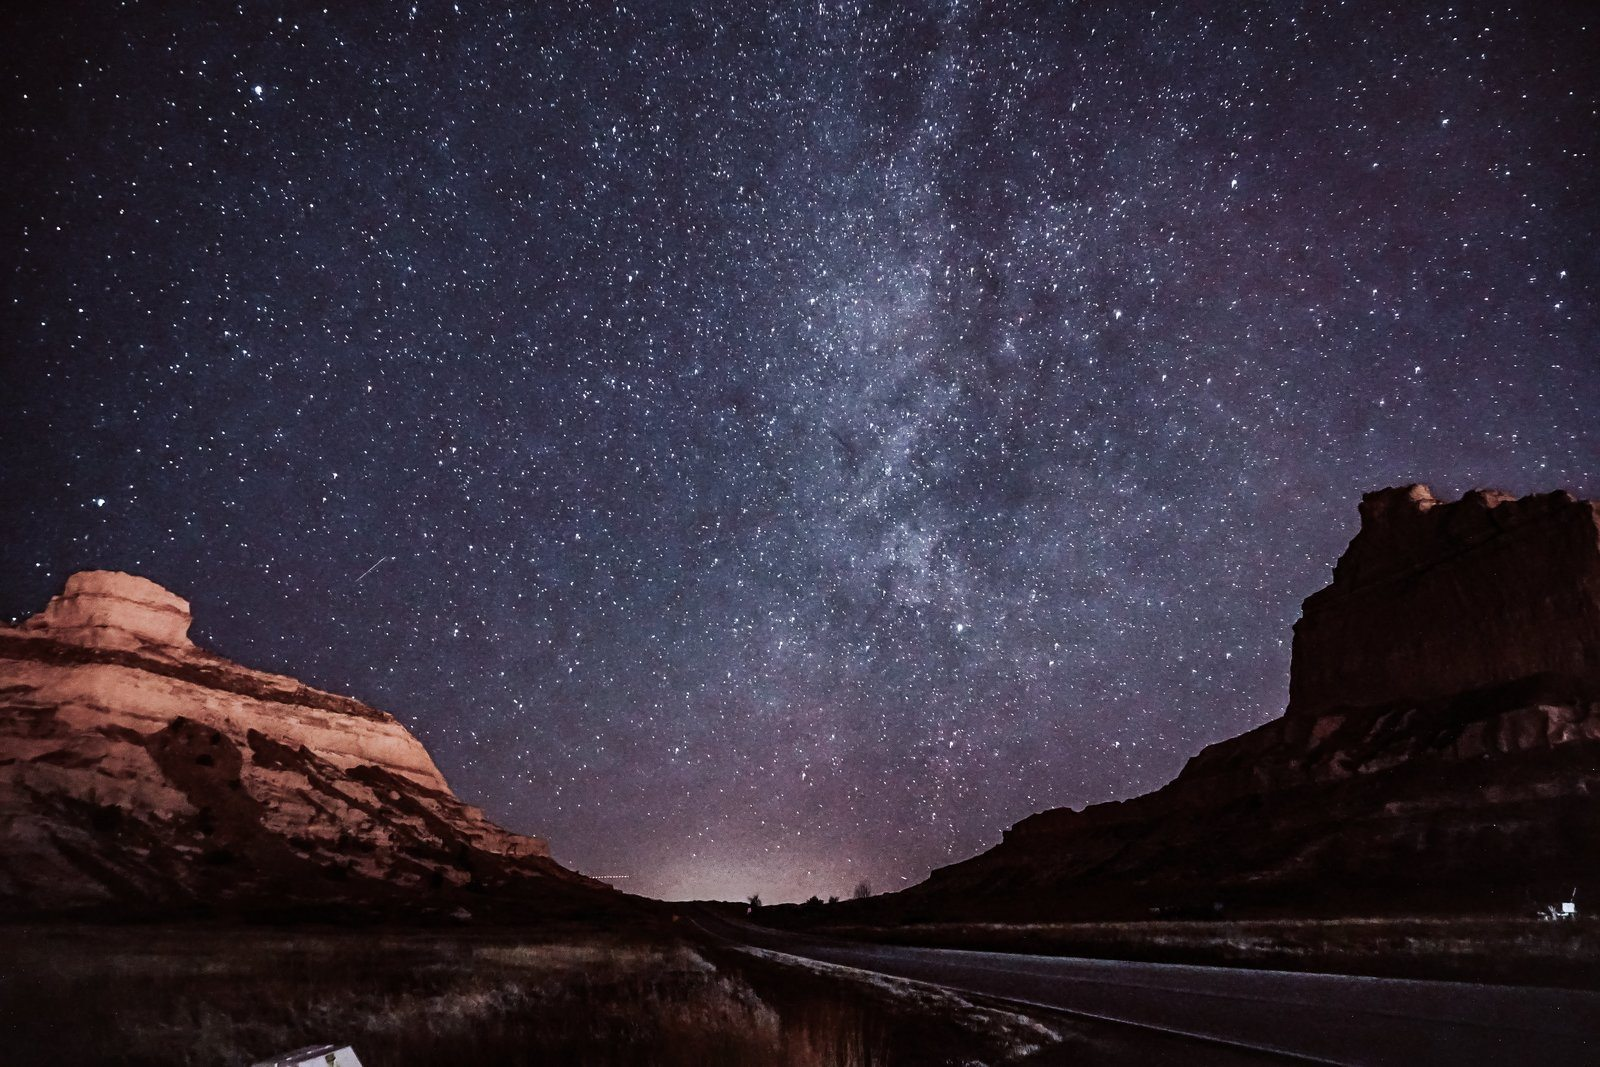 Starry Skies In The Dessert Canyons by Nanessa Reyes